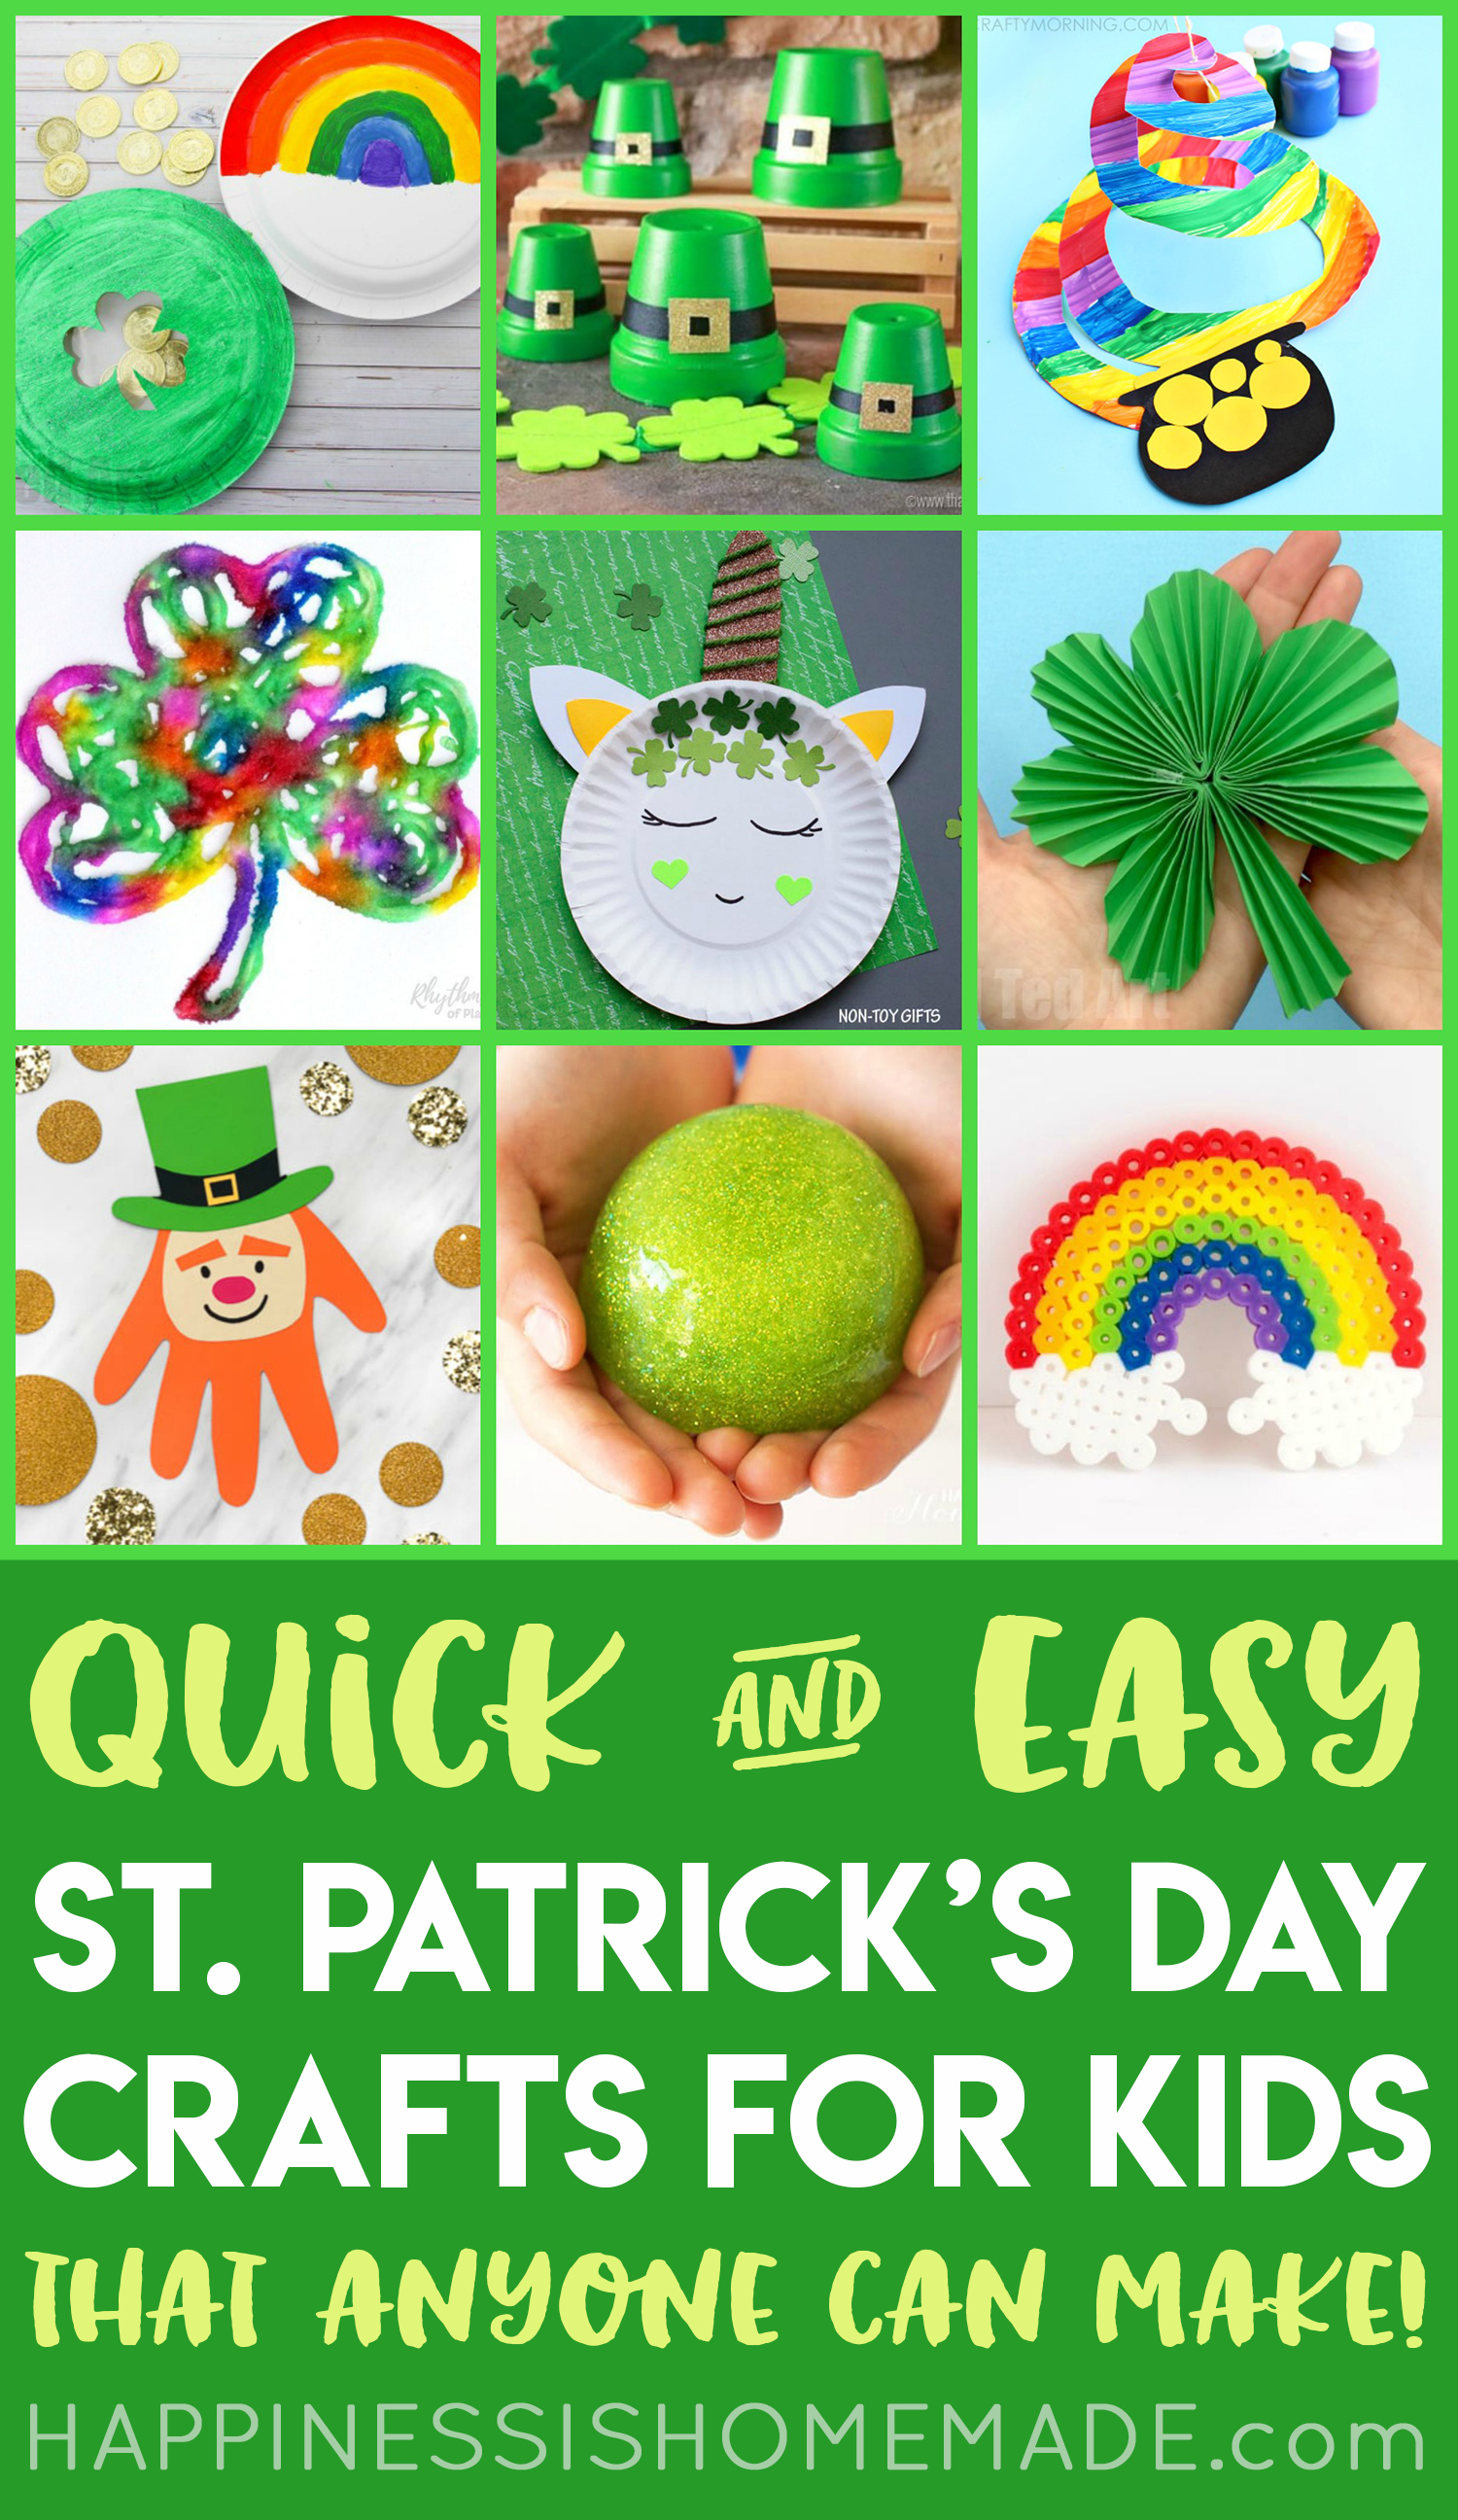 fbcd0a796 Looking for easy St. Patrick's Day crafts for kids? These fun St. Patrick's  Day crafts require no special tools or equipment (so ANYONE can make them!)  and ...